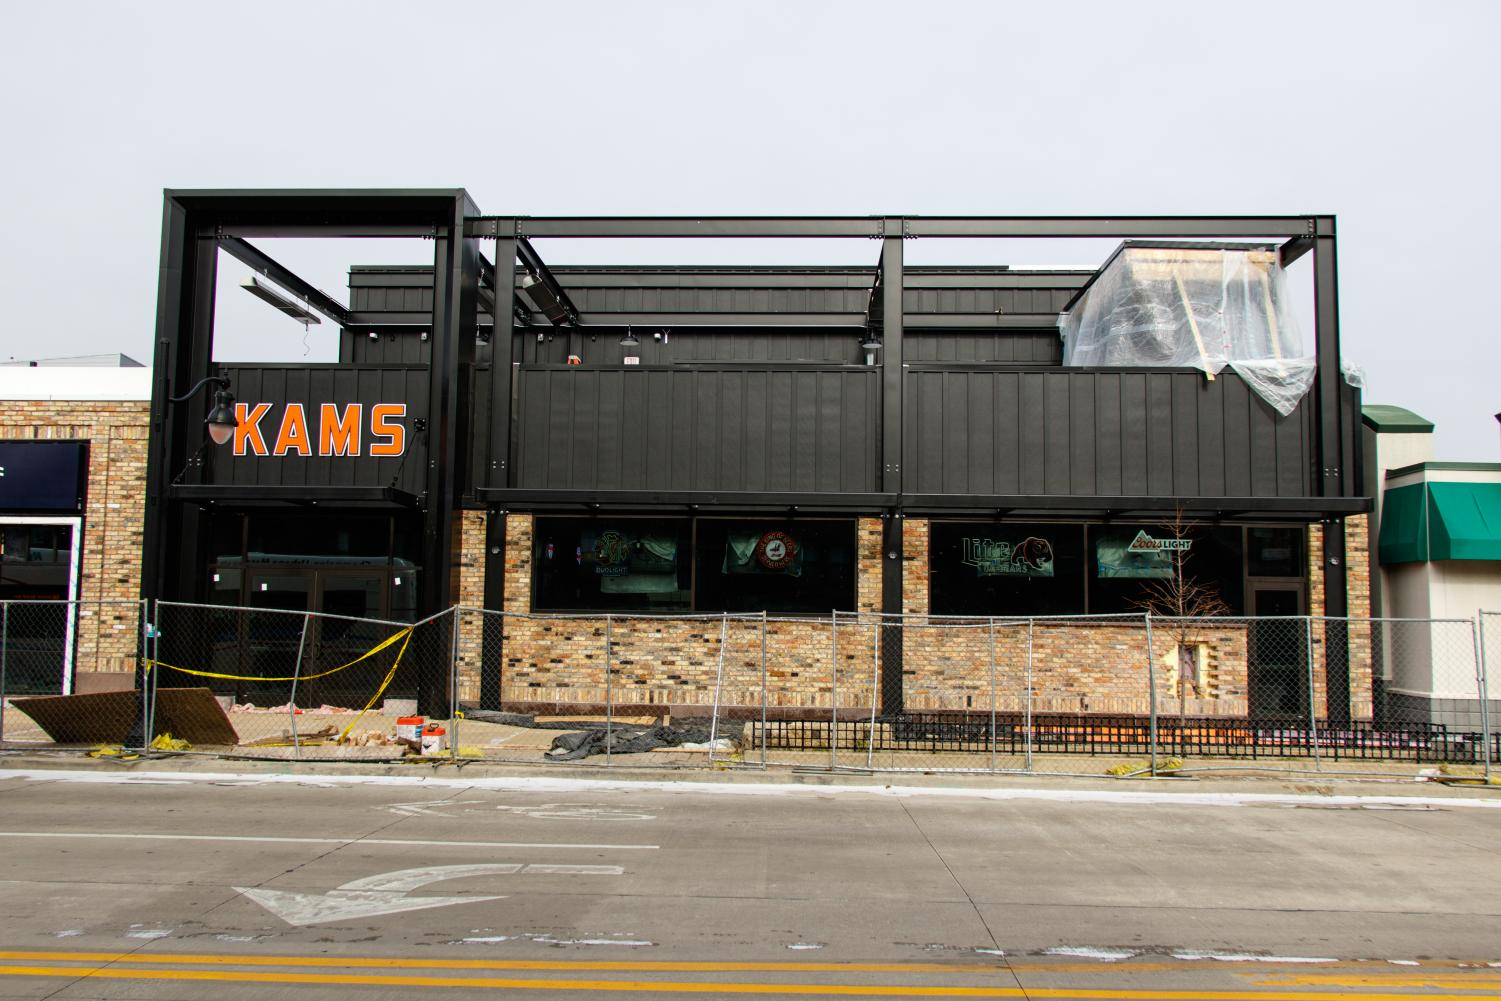 The new KAM's location, which sits on the corner of First and Green treets, remains under construction on Monday. The original opening date was scheduled for New Year's Eve, though the new date remains up in the air with construction still underway.